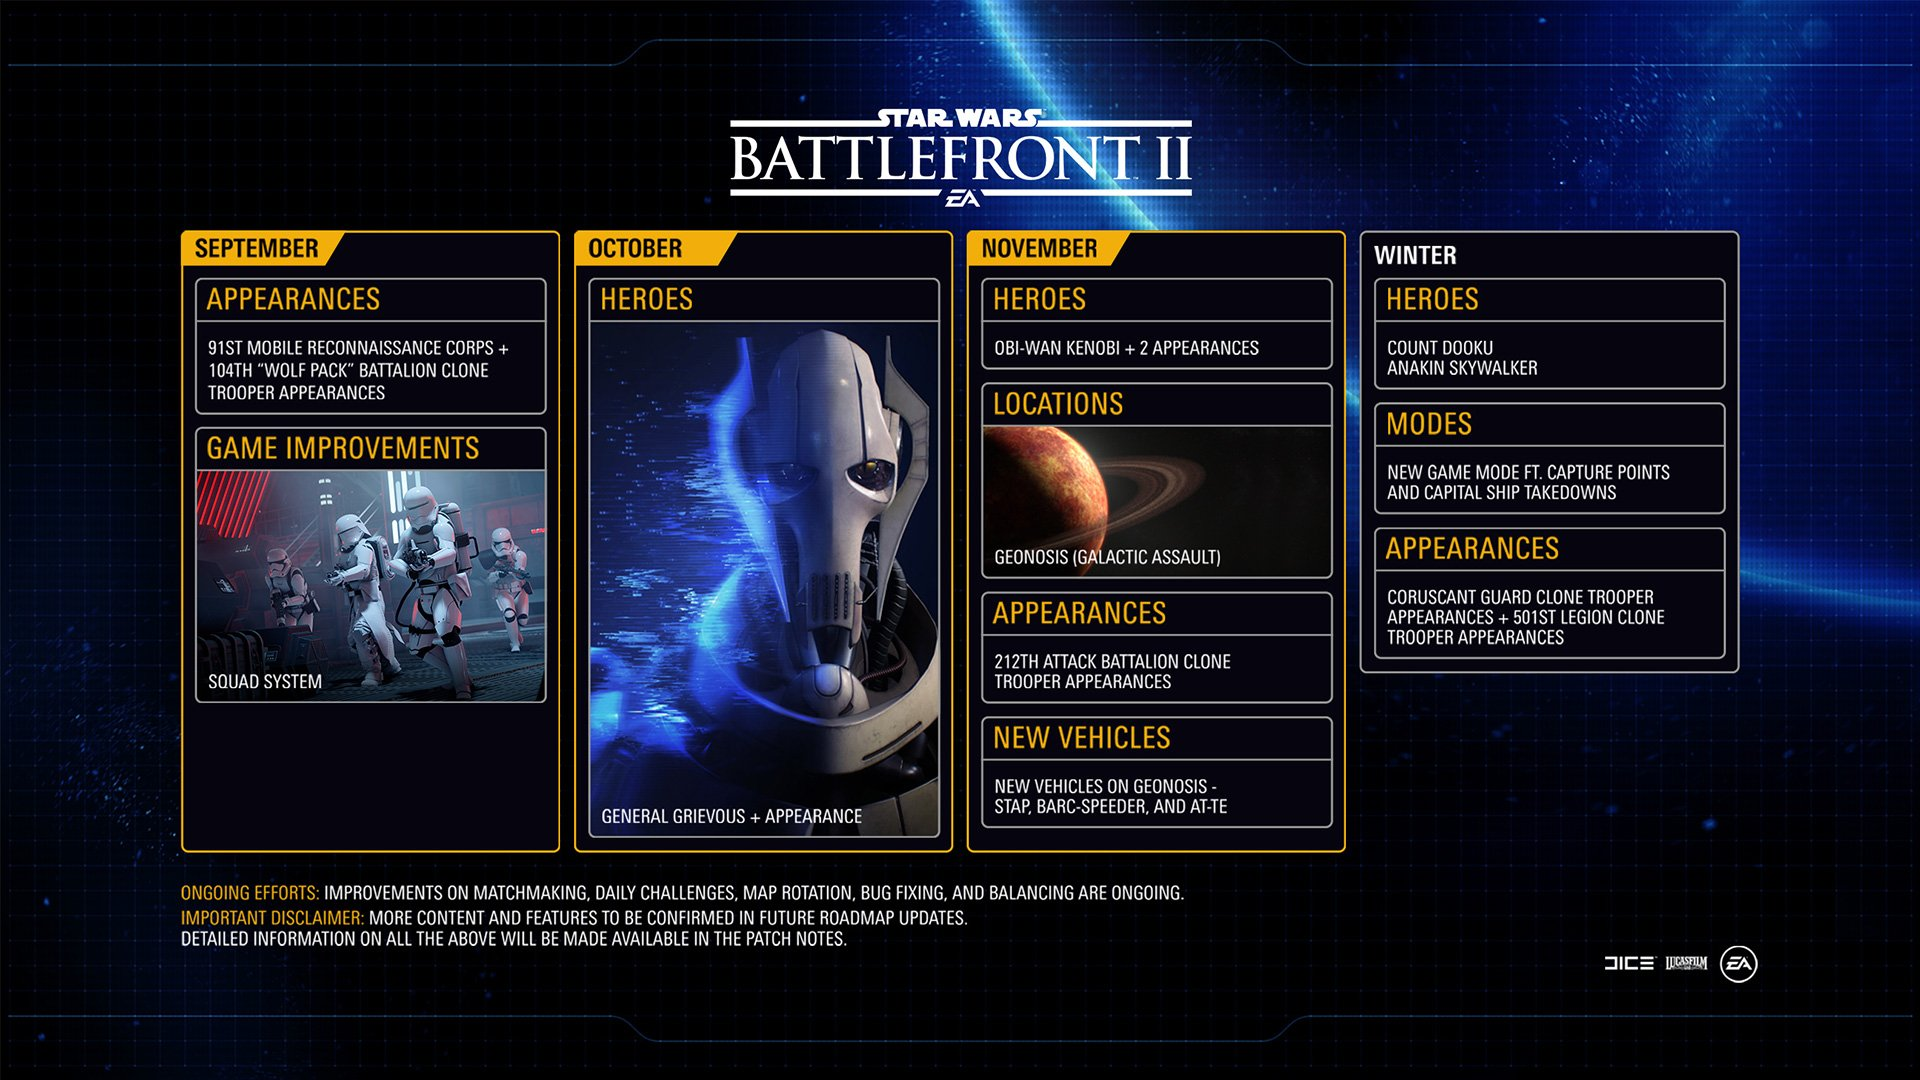 The Battlefront II roadmap as of August 29